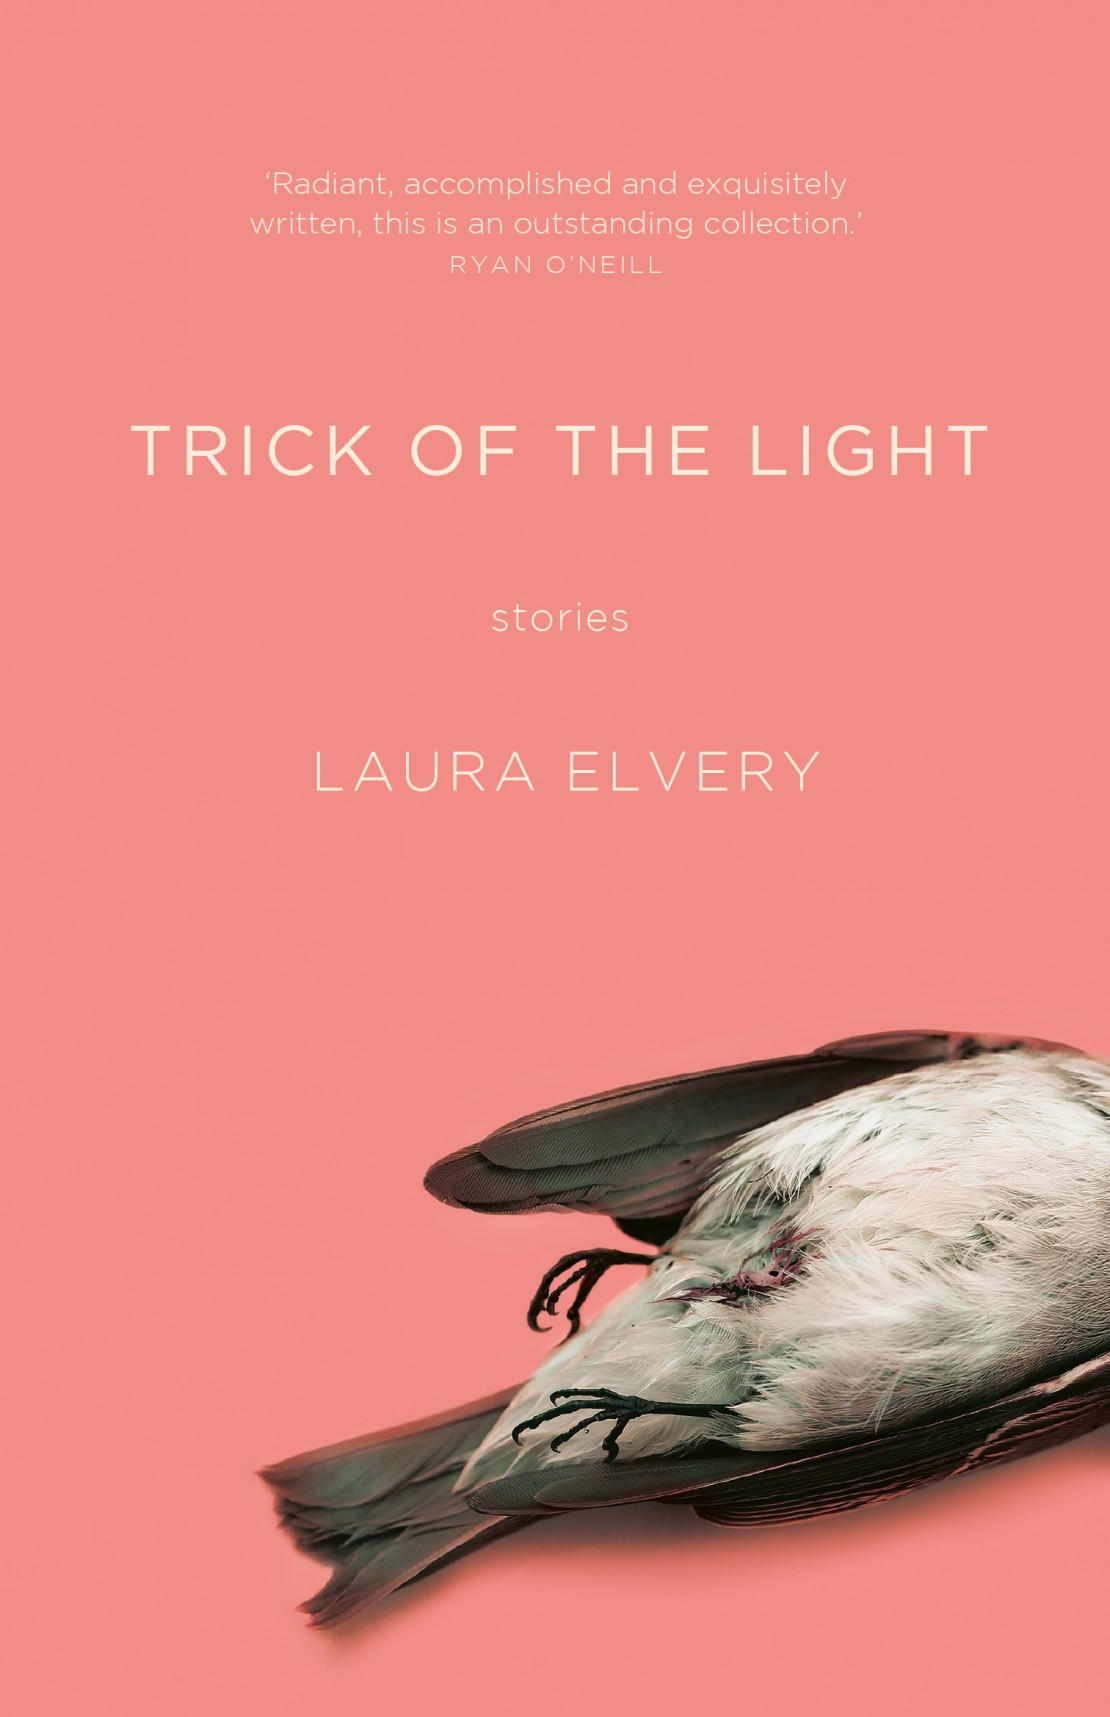 Trick of the Light by Laura Elvery